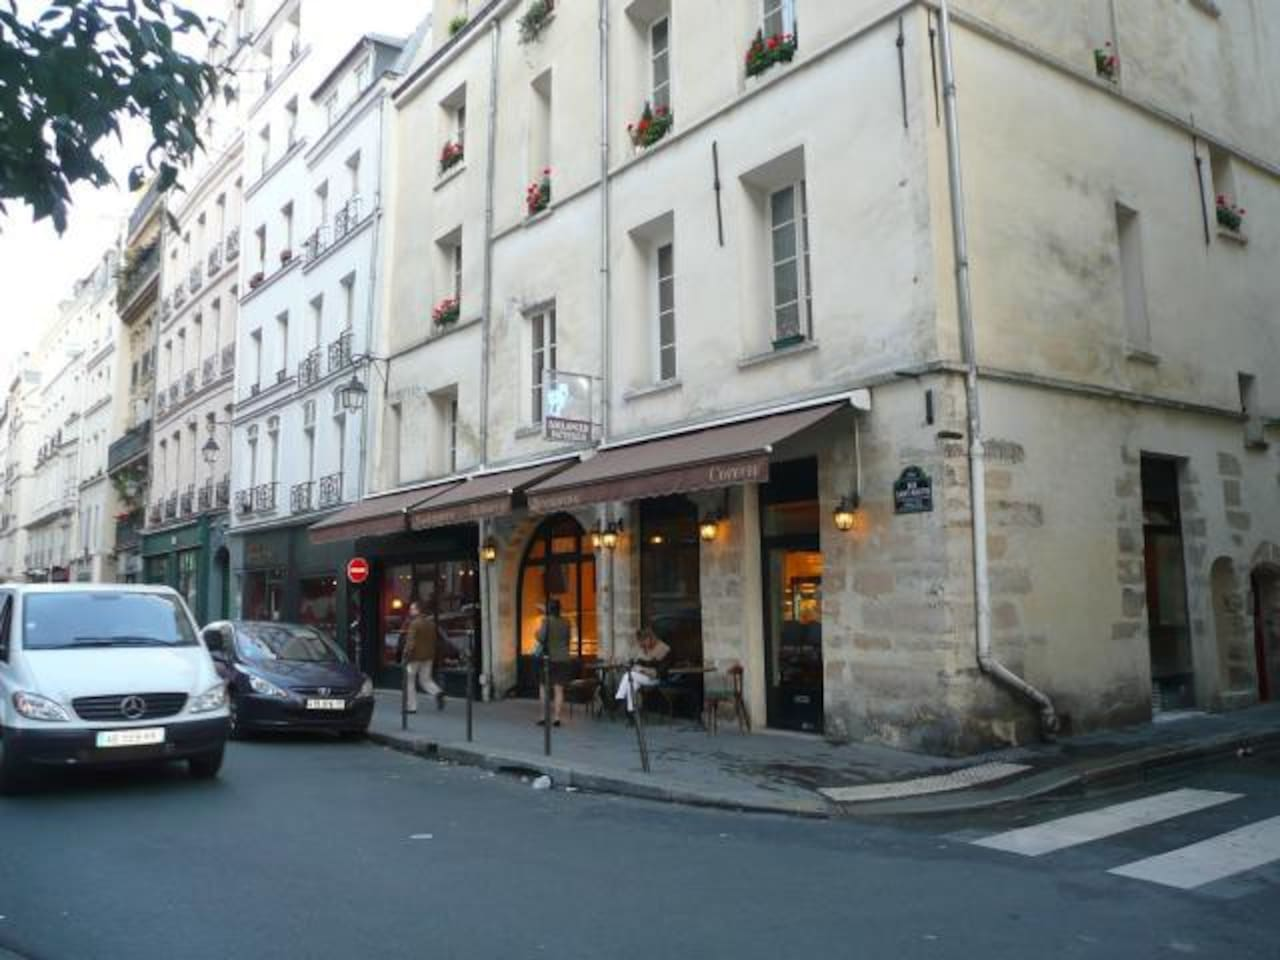 The apartment is located on rue St Martin in the 3rd eme